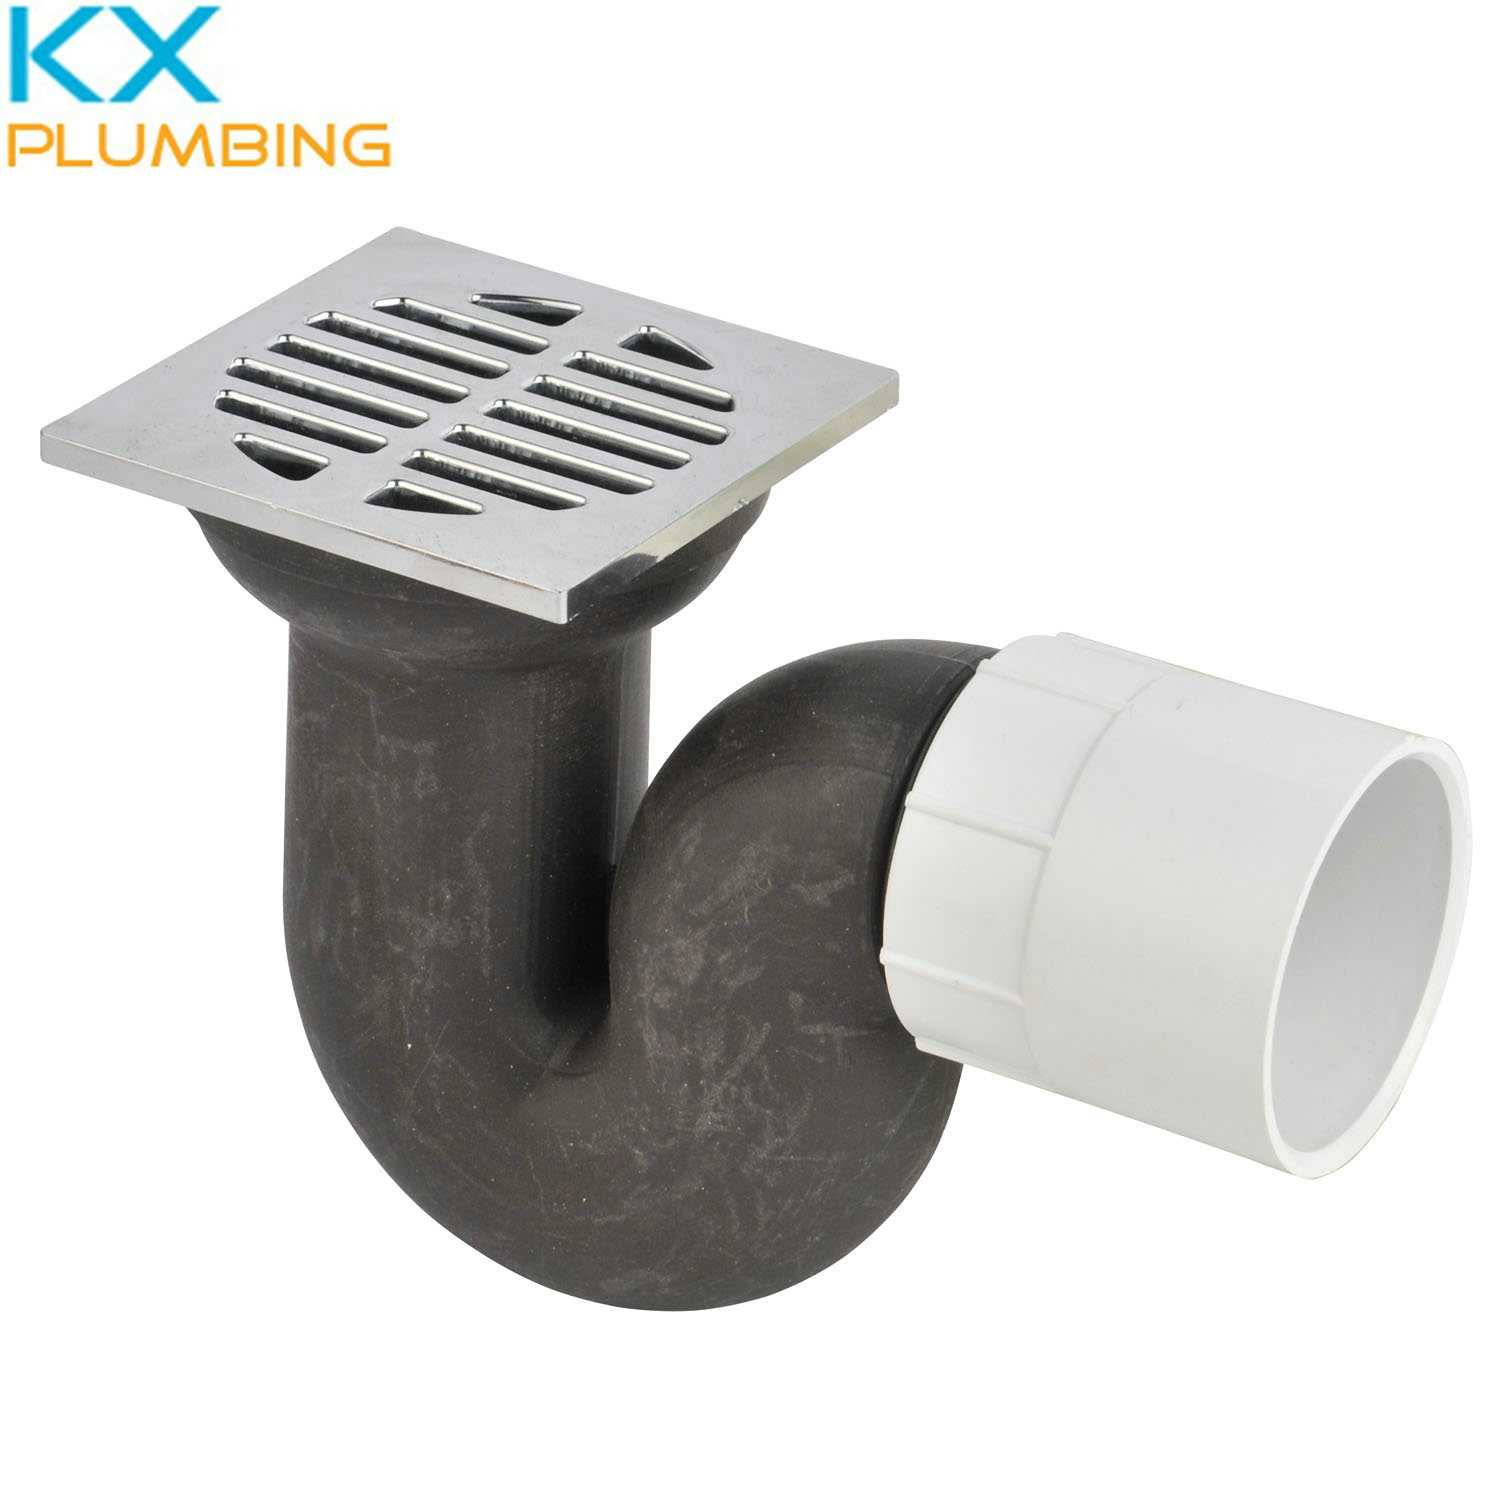 High Quality PVC Shower Trap Strainer Drain